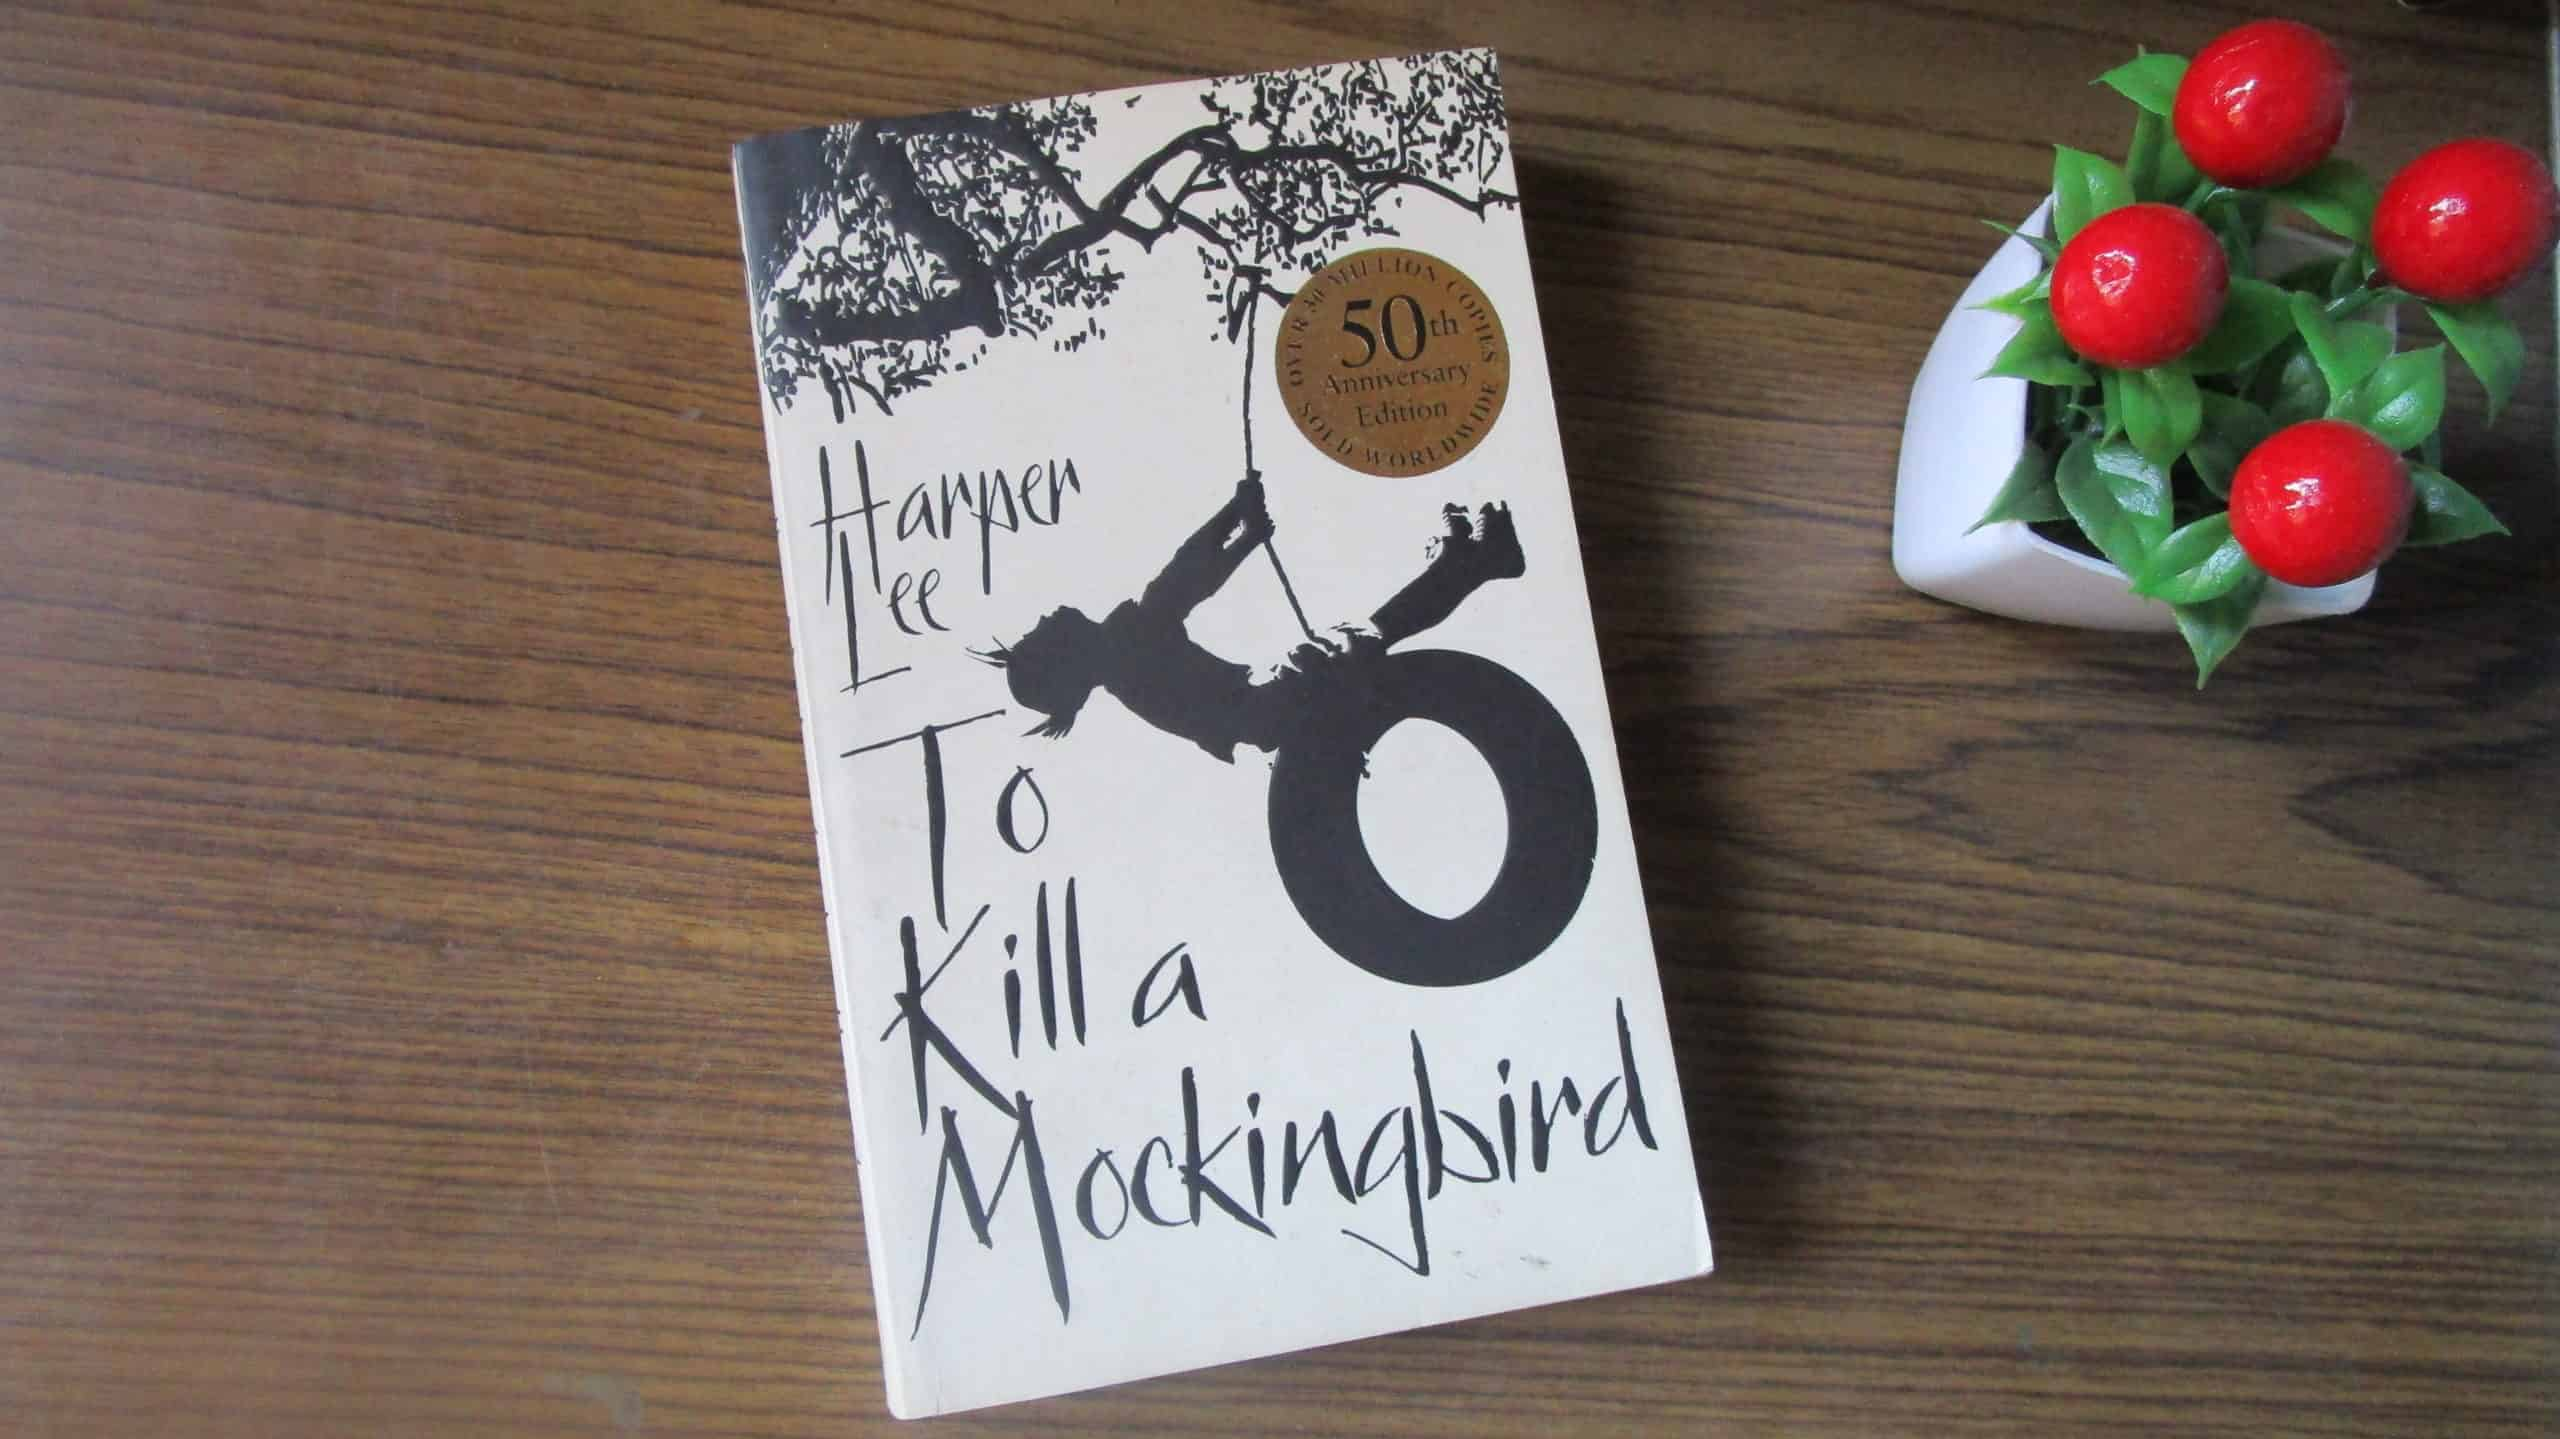 To Kill A Mockingbird By Harper Lee Author Book Novel Review Rating